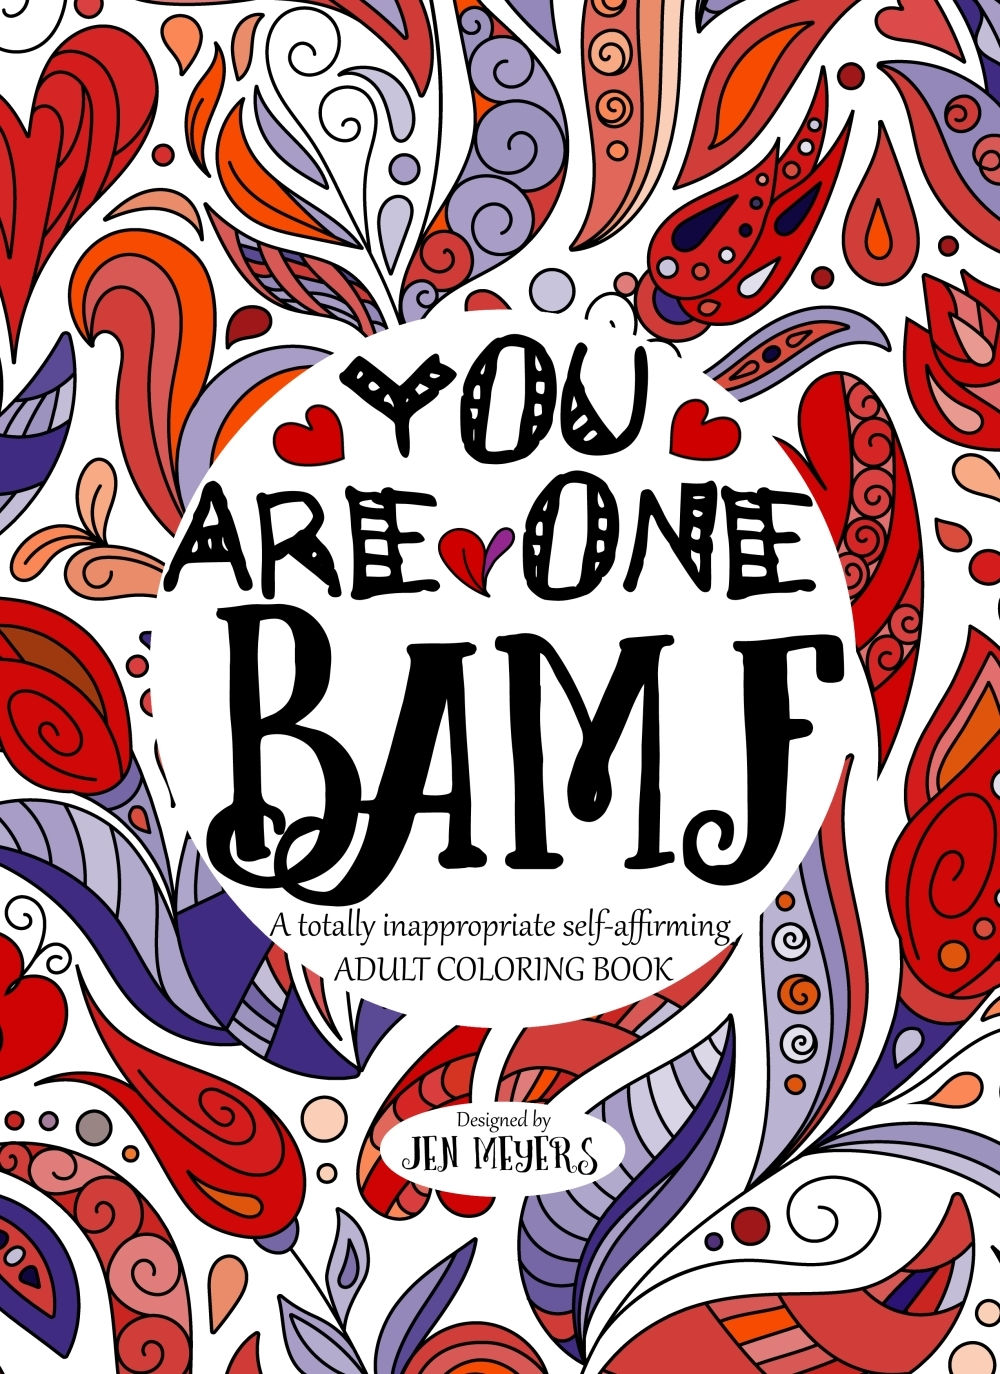 You Are One Bamf: A Totally Inappropriate Self-Affirming Adult Coloring Book